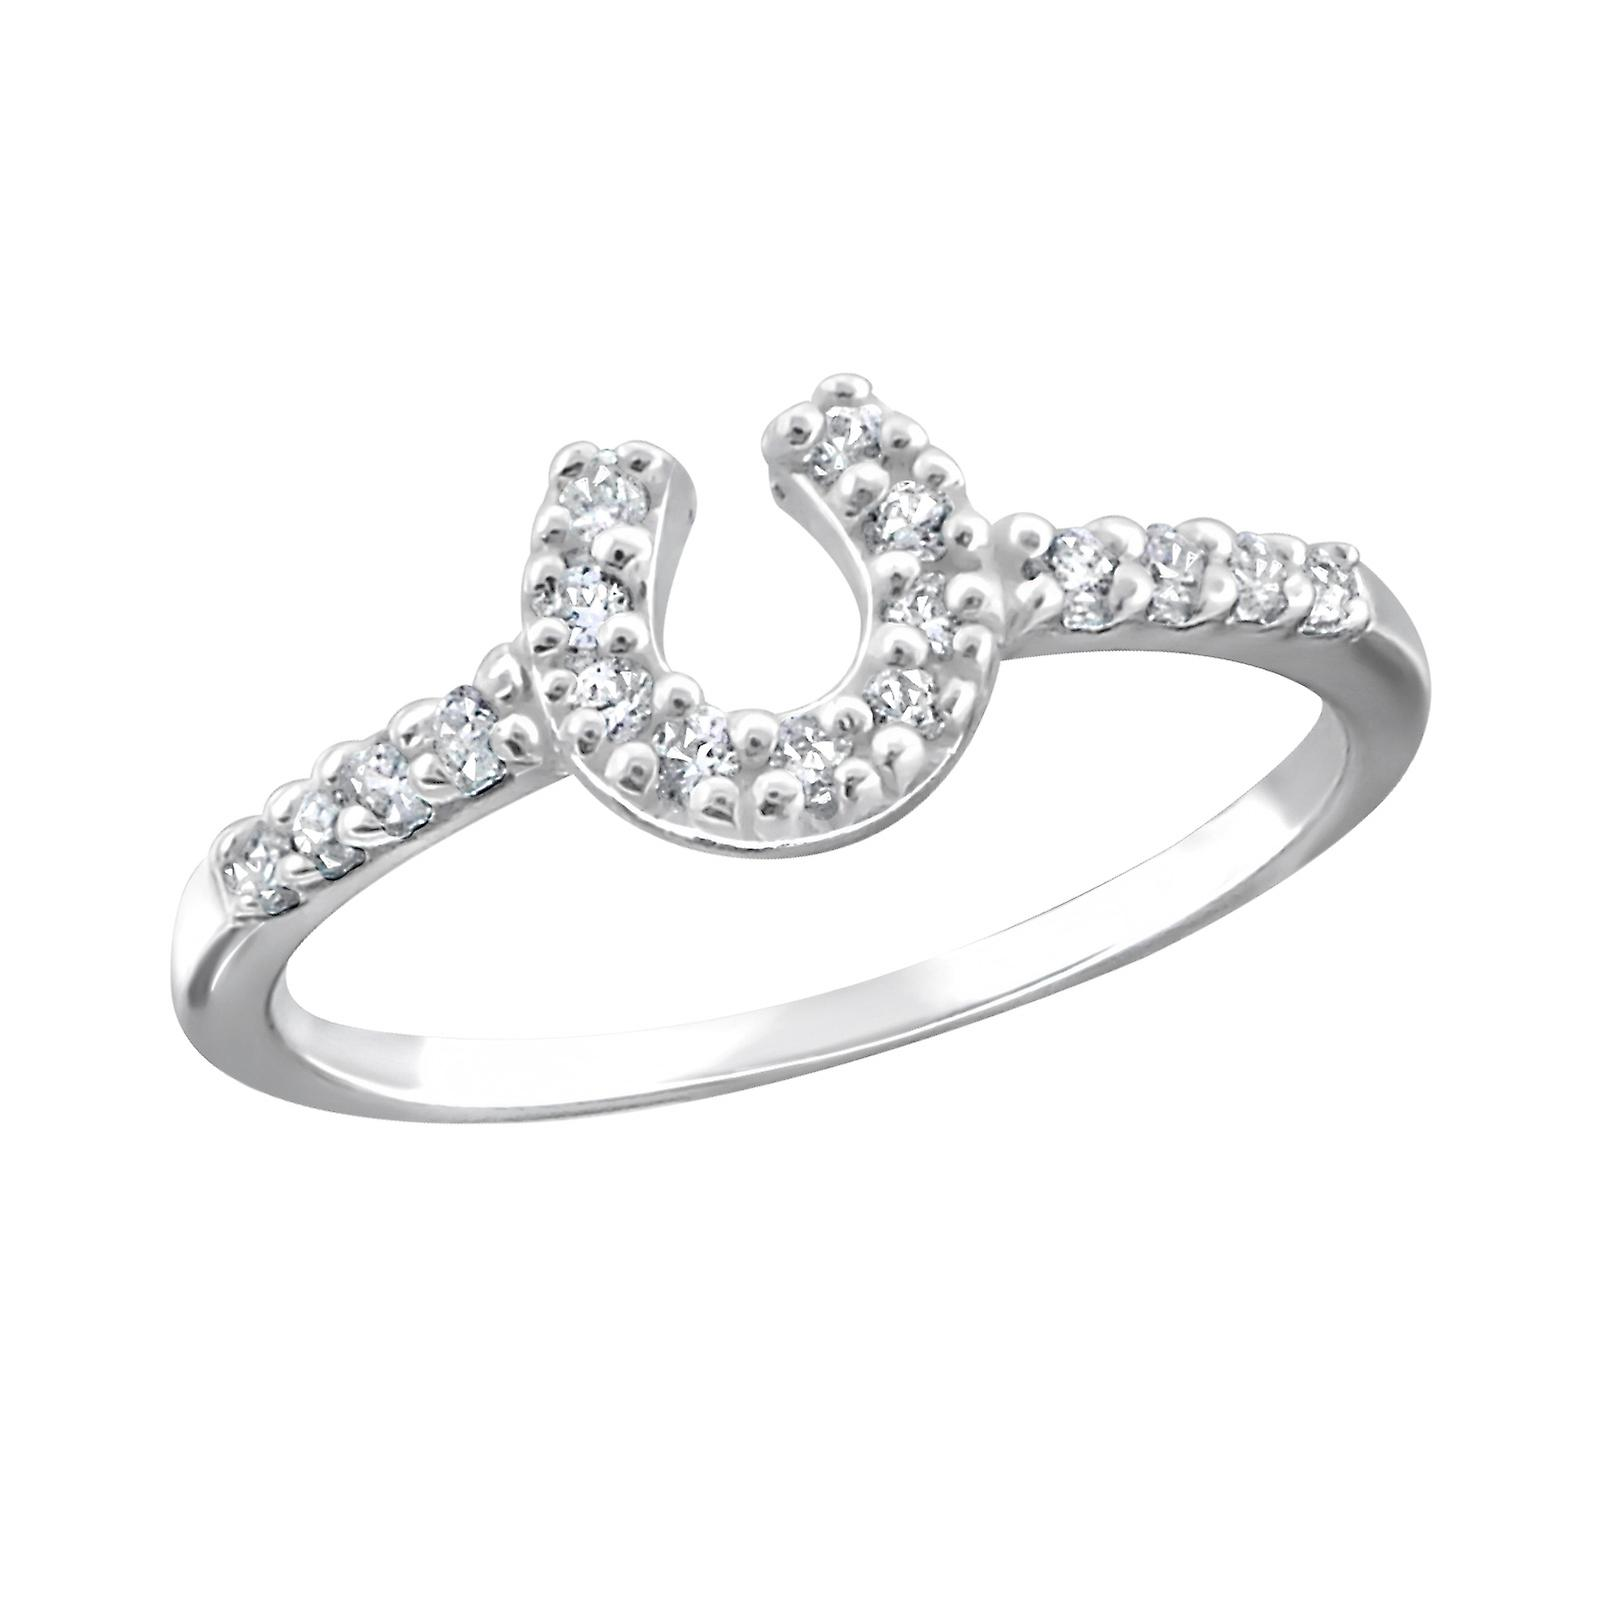 Horse shoe - 925 Jewelled Sterling Silver Jewelled 925 Rings a694aa